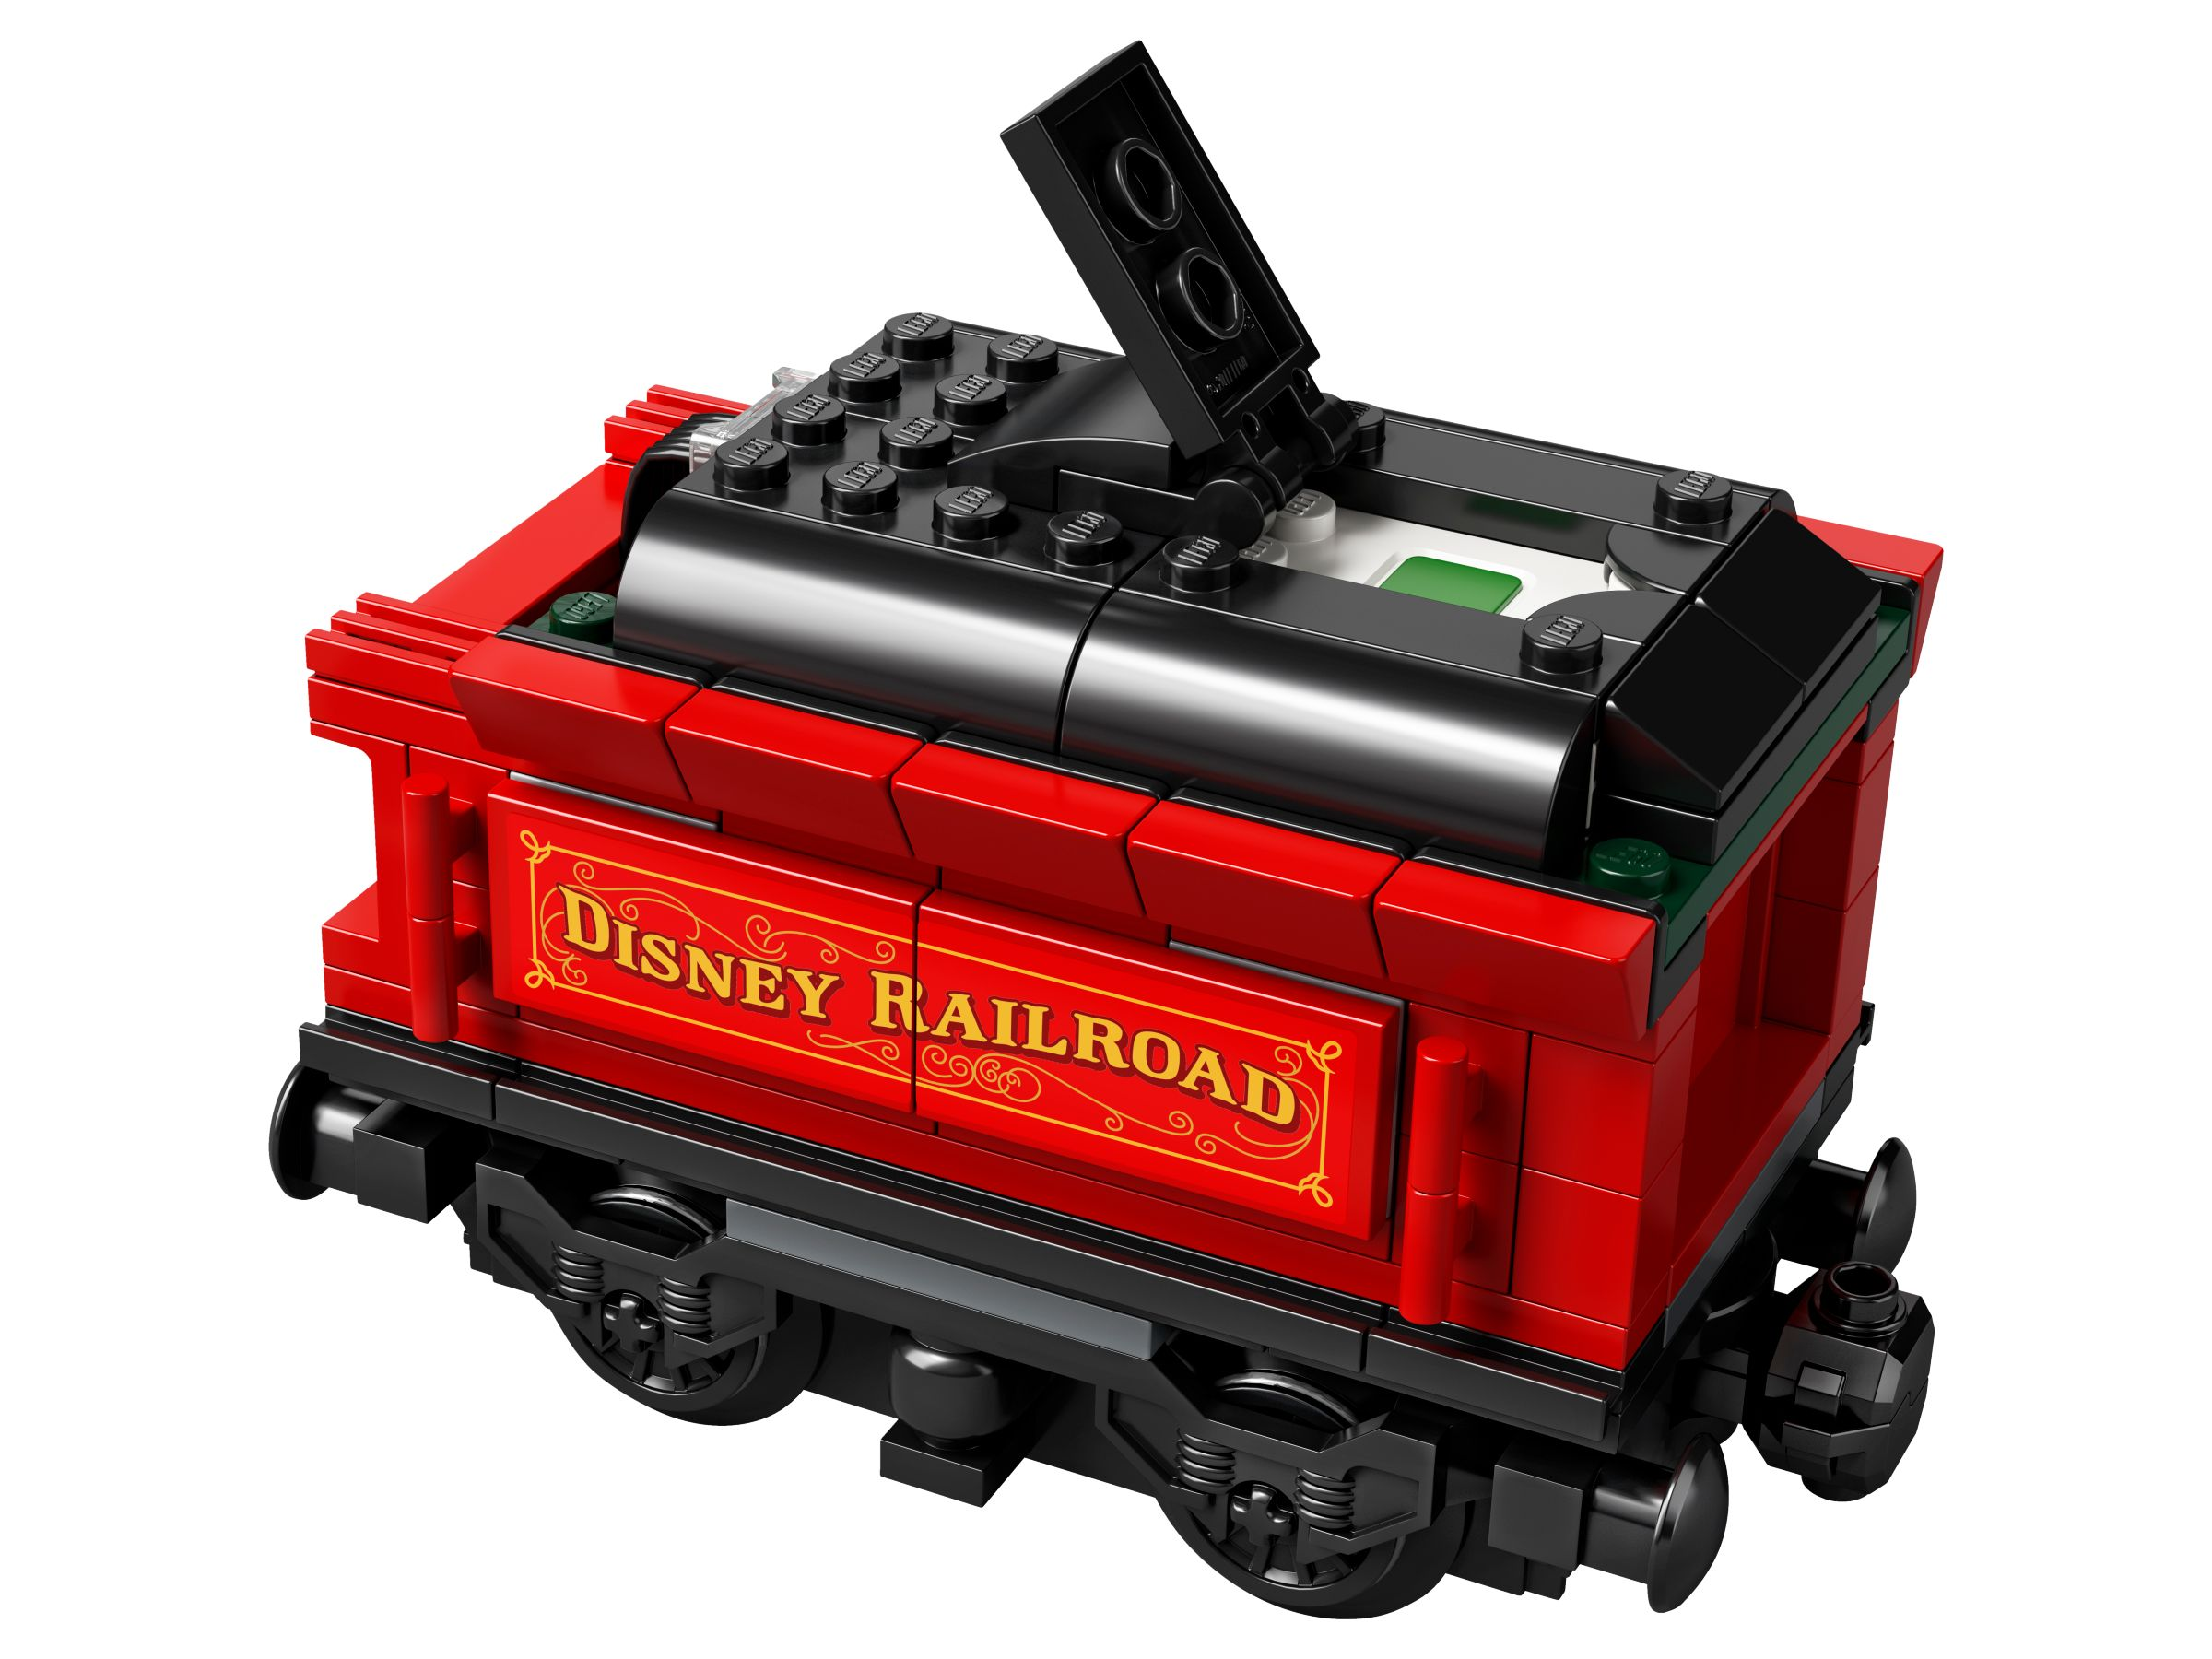 LEGO Advanced Models 71044 Disney Zug mit Bahnhof LEGO_71044_alt11.jpg